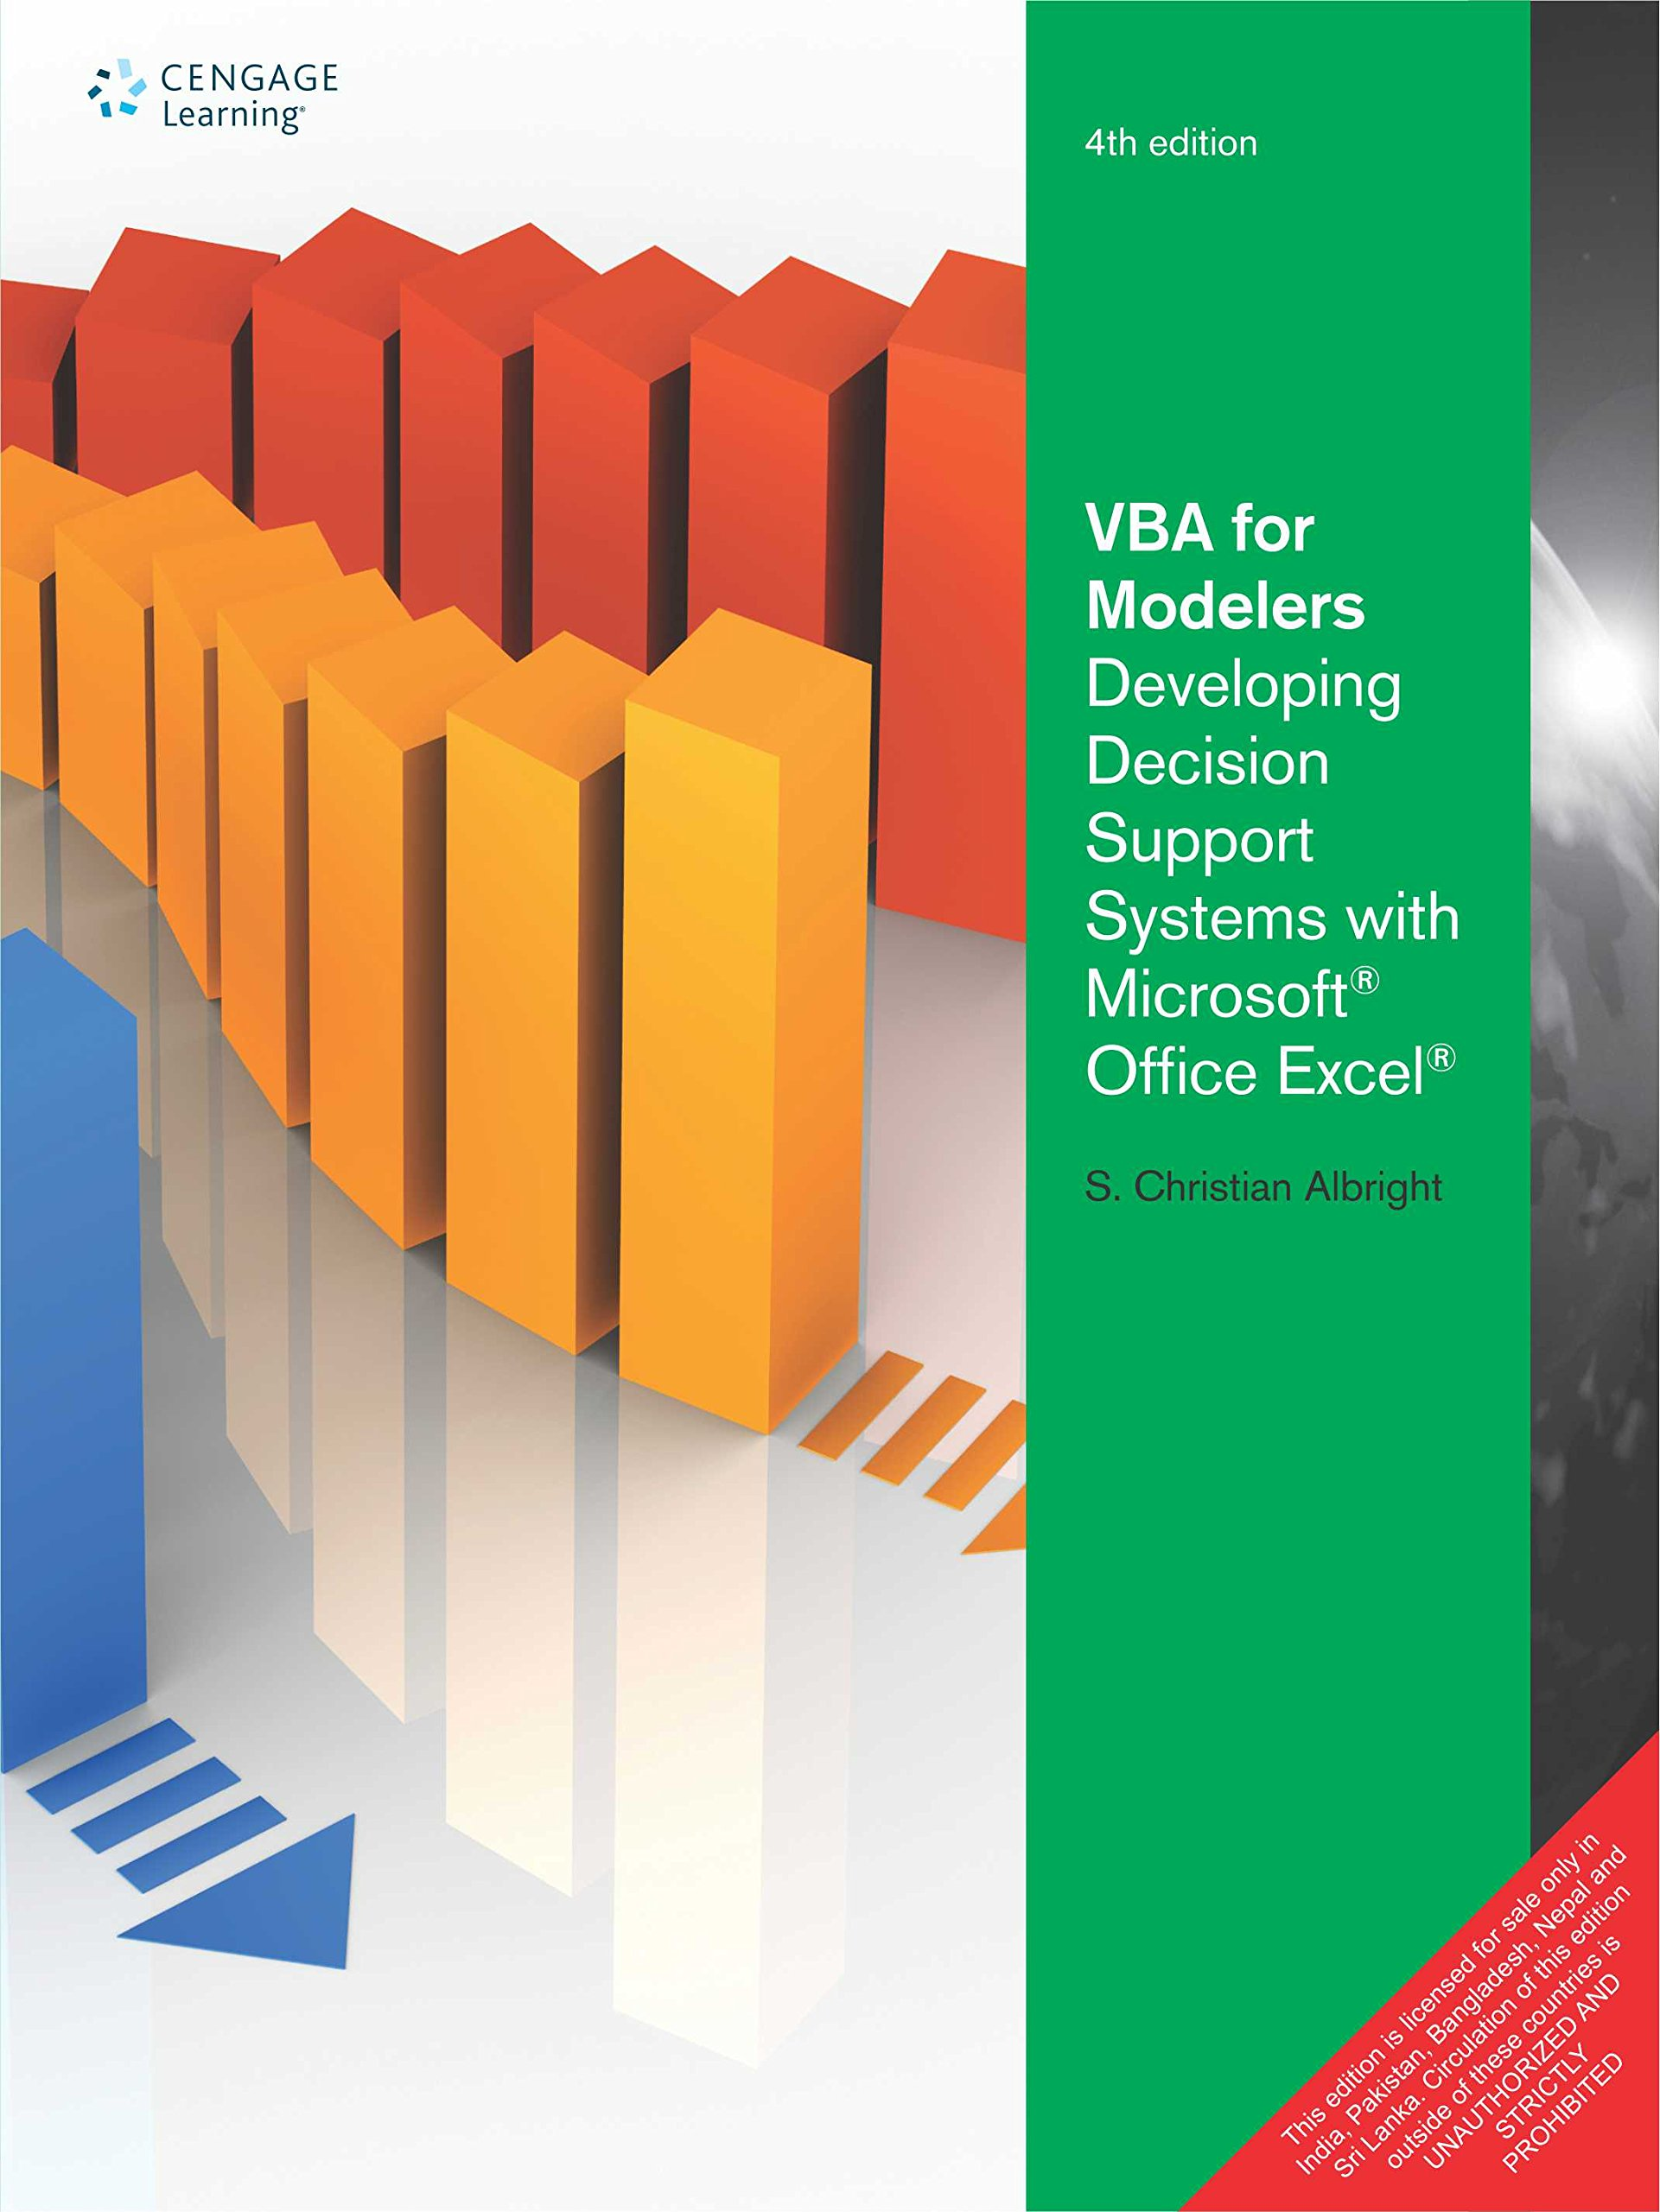 Developing Decision Support Systems with Microsoft/® Office Excel/® VBA for Modelers